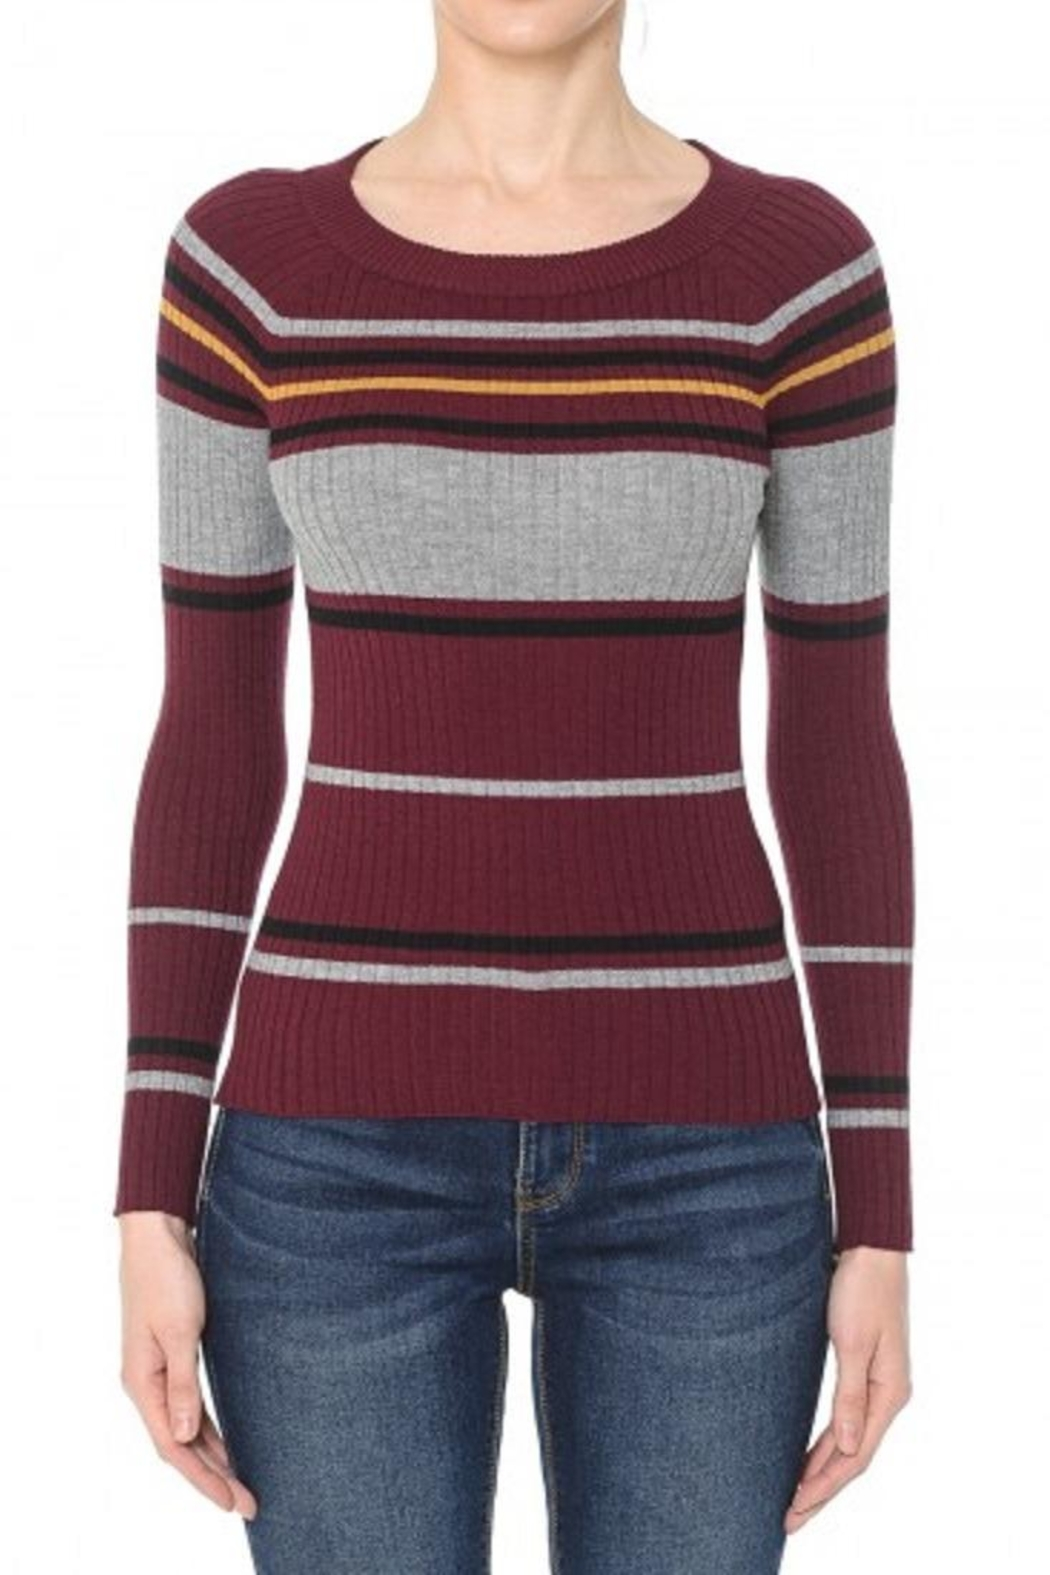 Ambiance Multi-Striped Ribbed Sweater/top - Main Image